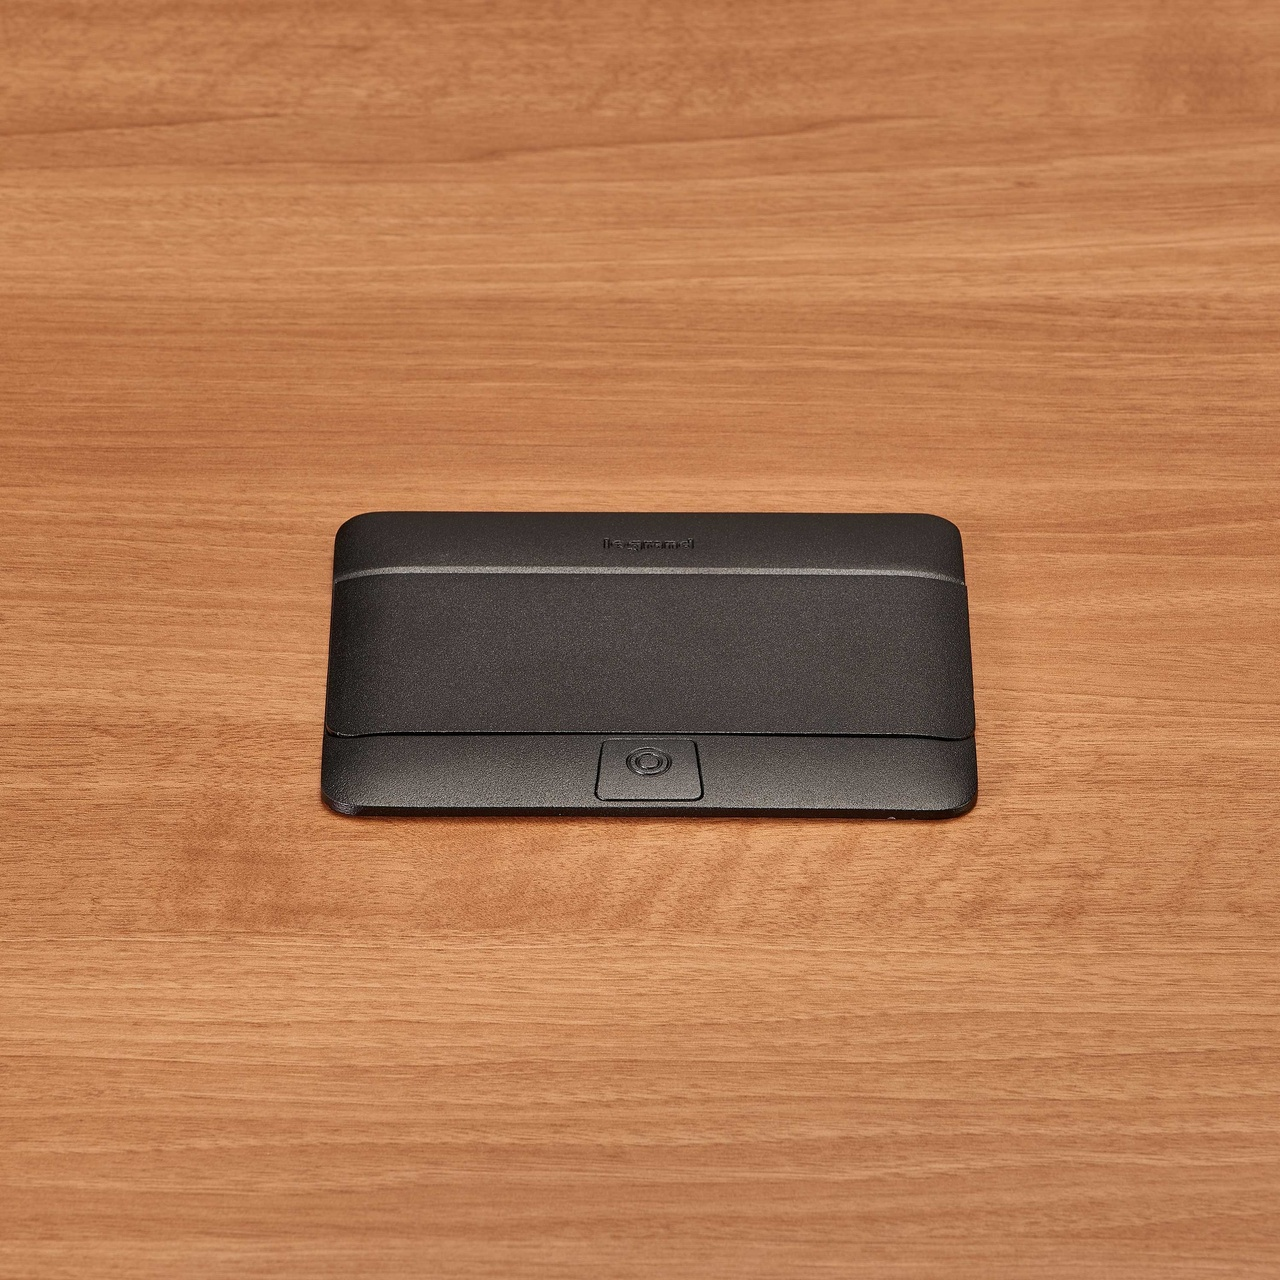 deQuorum Flip-Up Table Box 1-Gang 15A recep 3.1A USB, black finish-closed view, DQFP15UBK